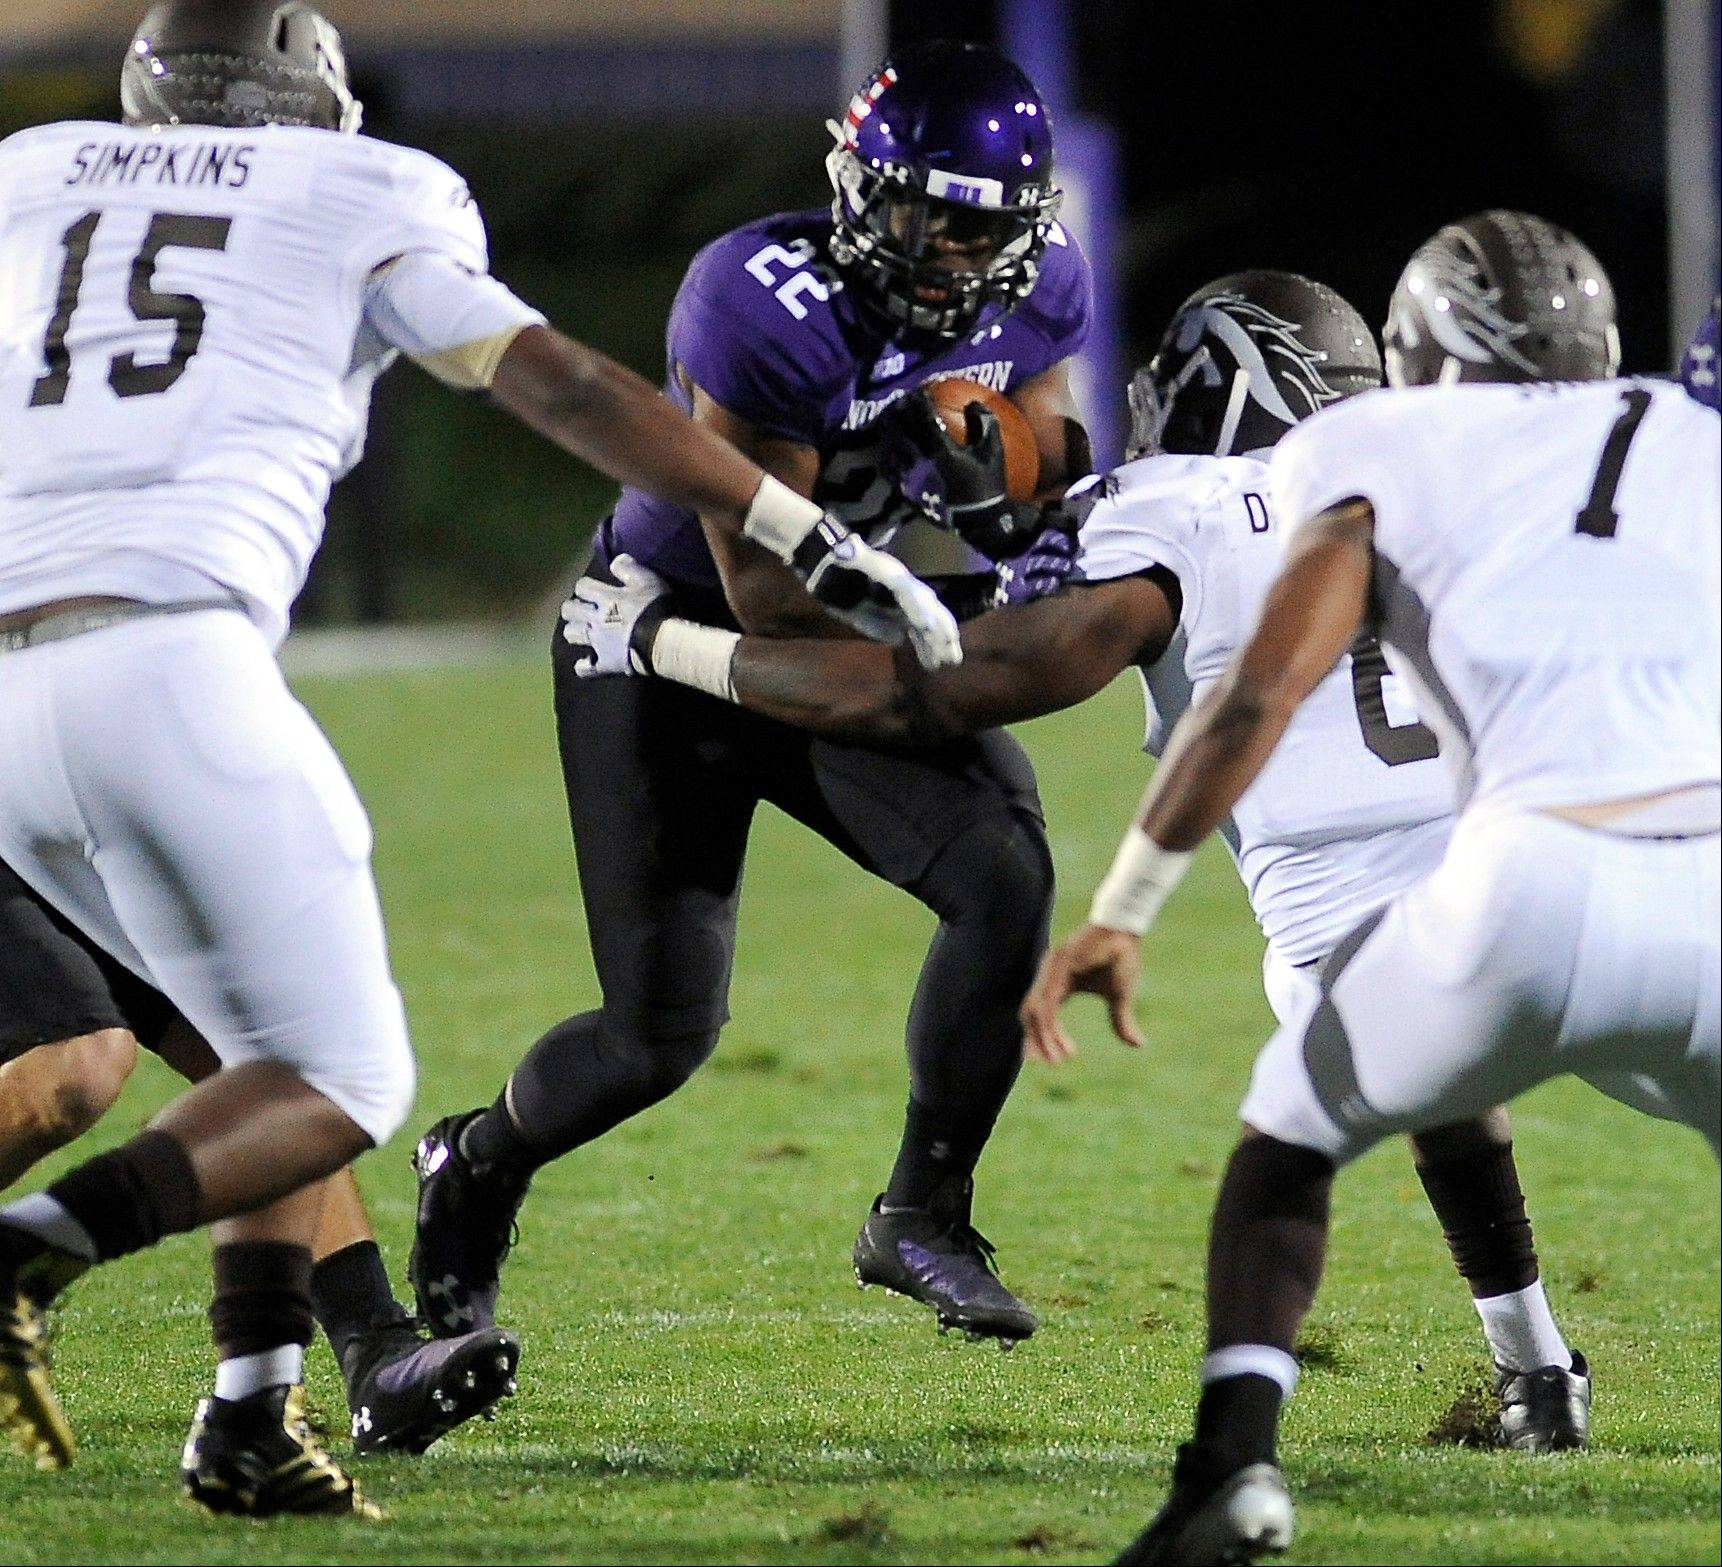 Northwestern�s Treyvon Green runs against Western Michigan during last week�s win in Evanston. He amassed a personal-best 158 yards and two TDs.